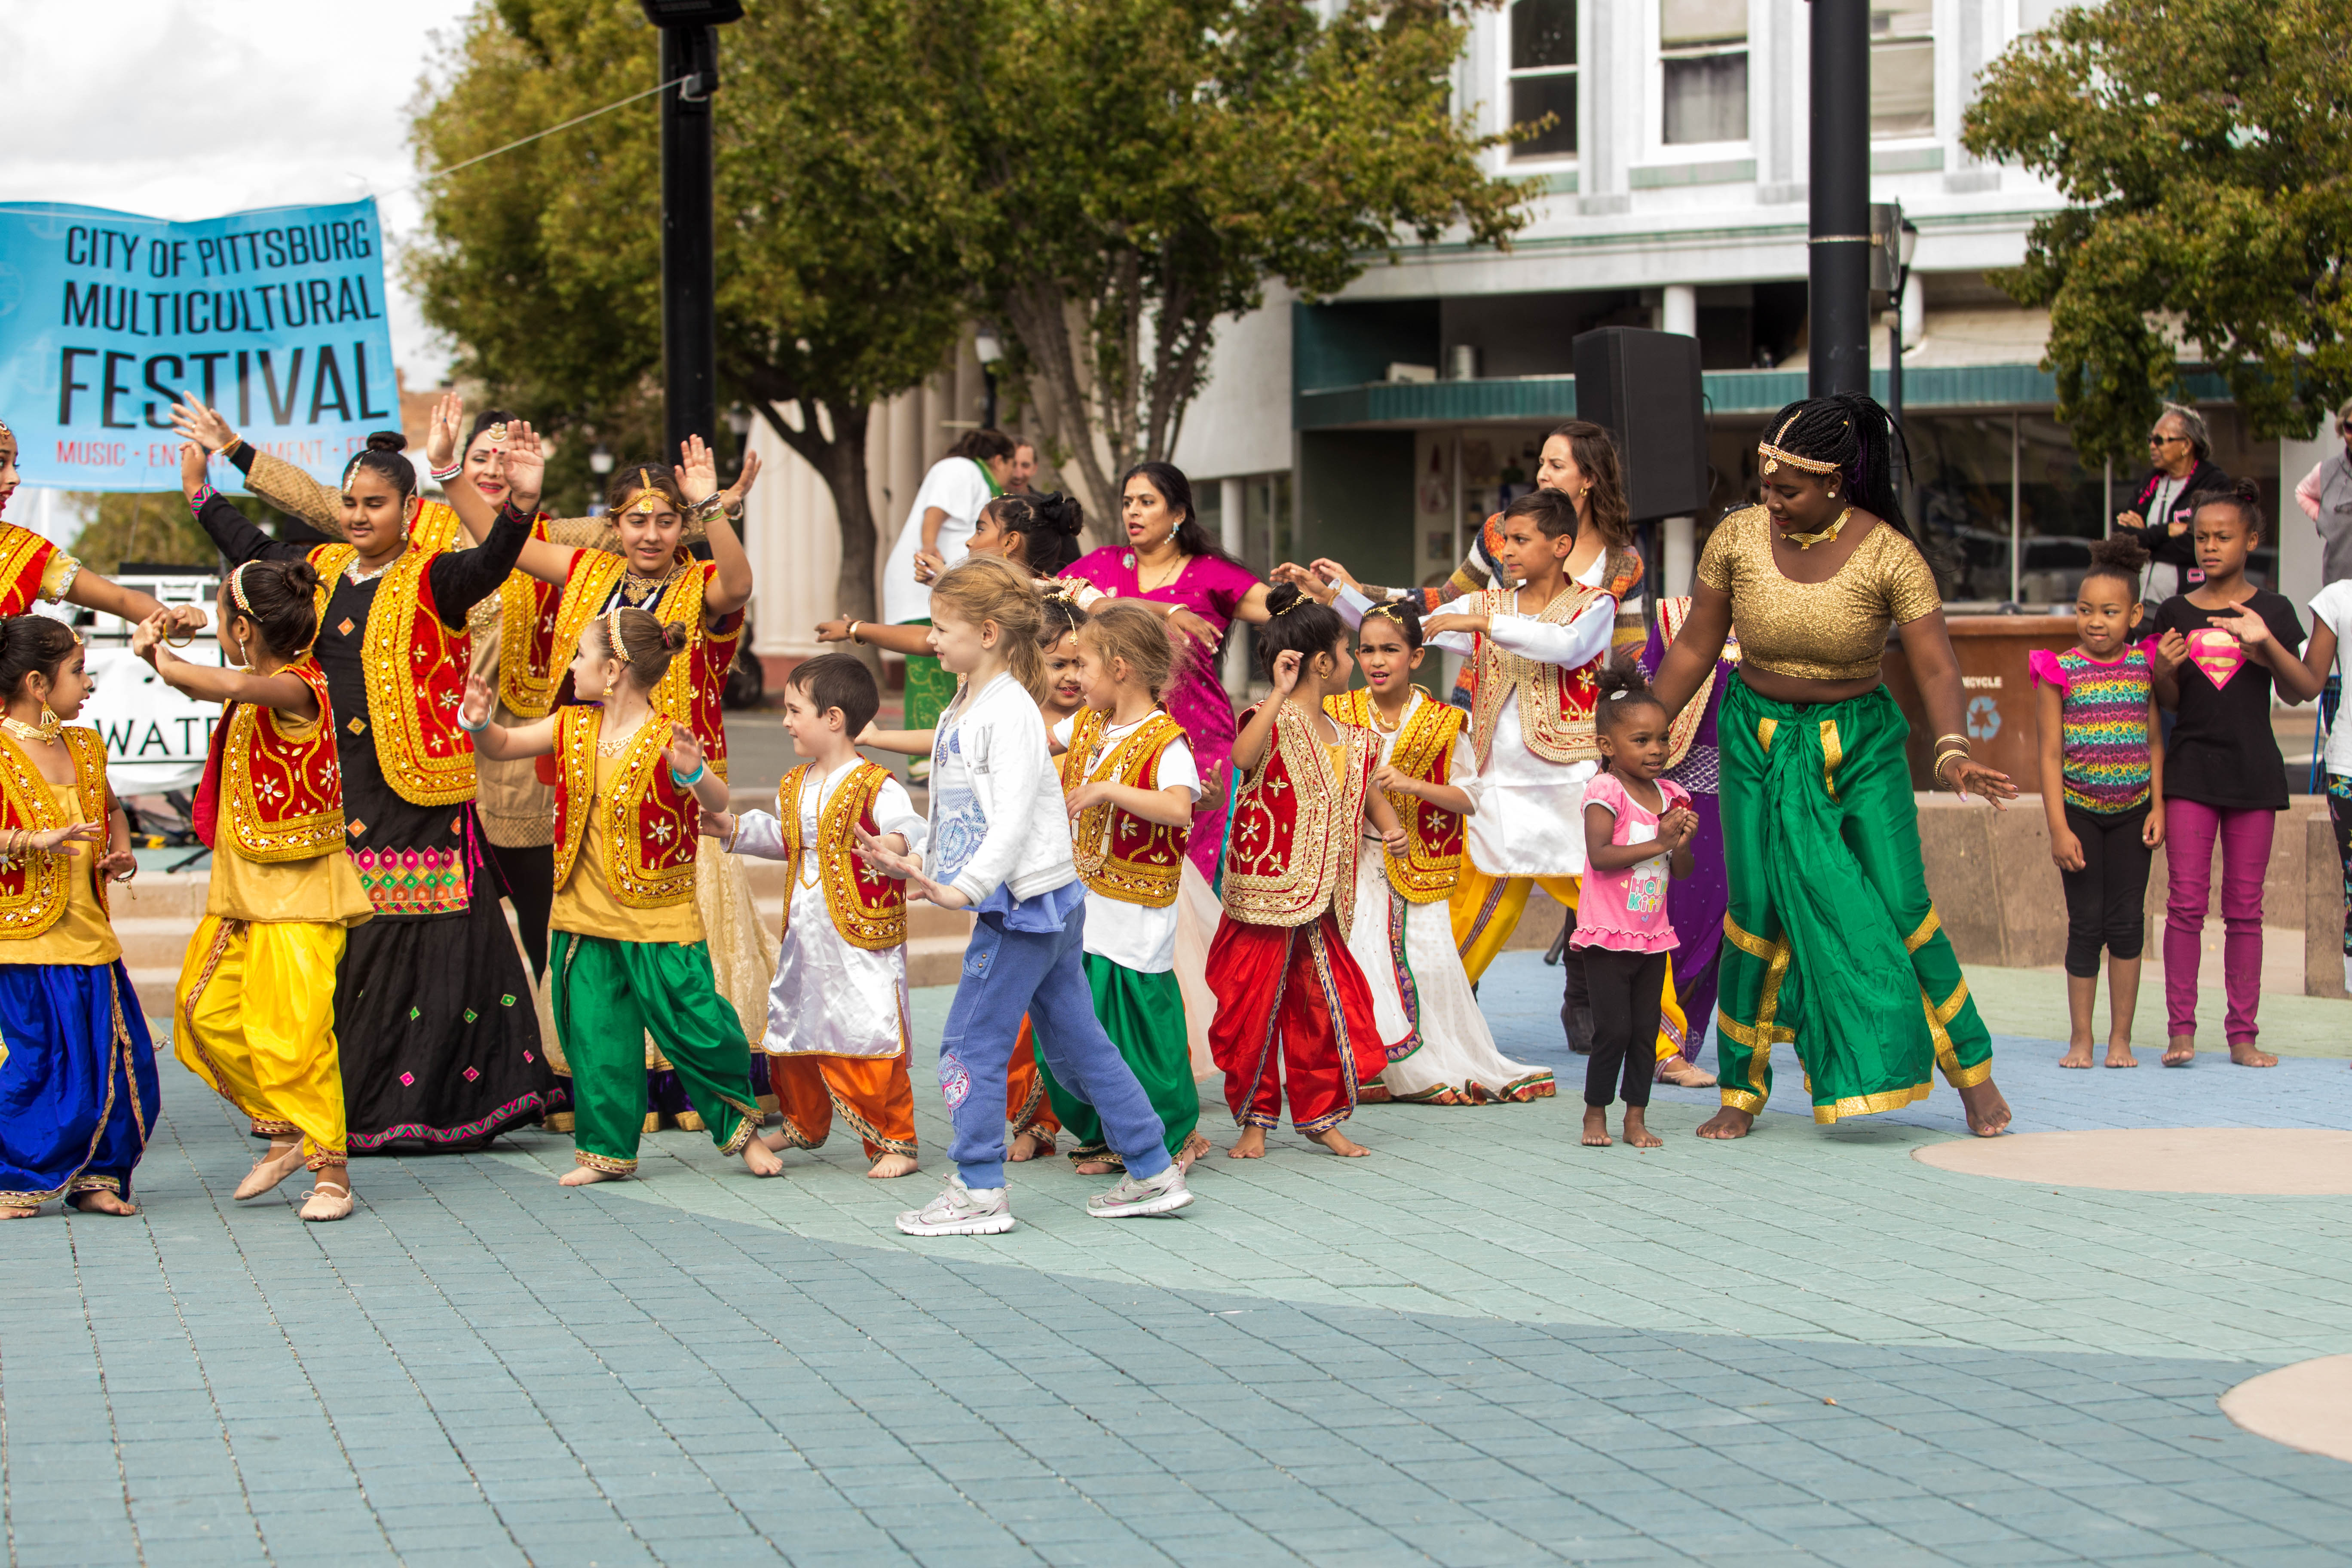 CITY_PITTSBURG_MULTICULTURAL_OCTOBER_2016 (726)